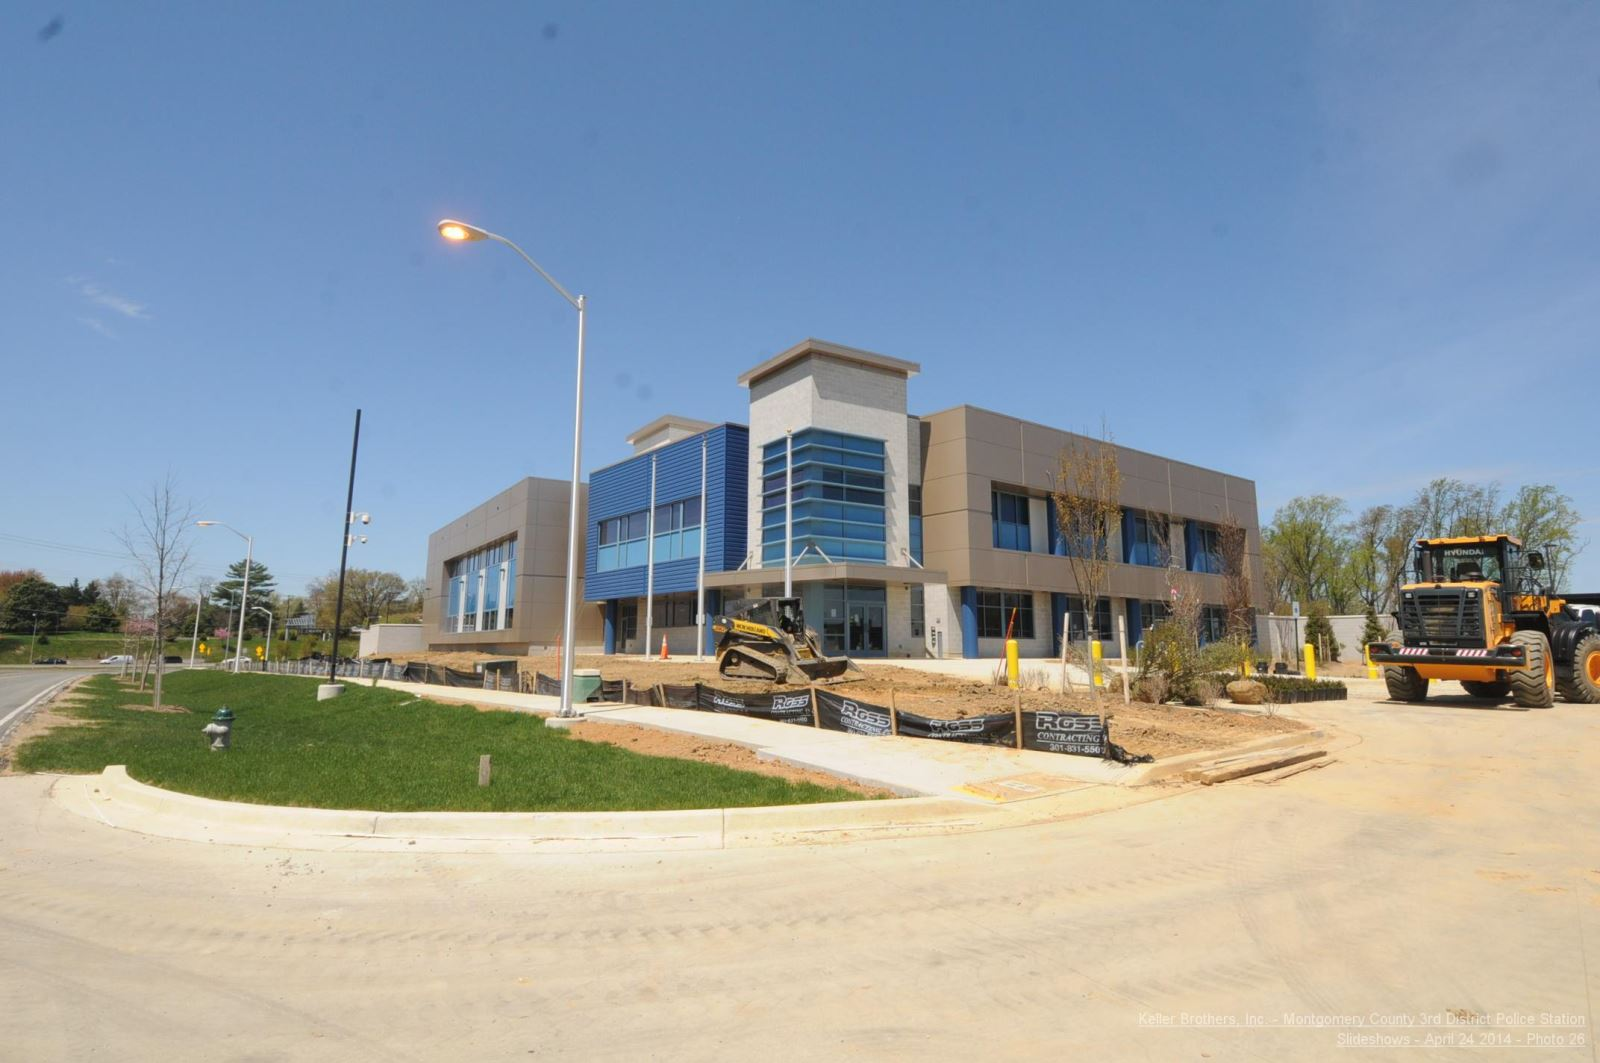 3rd District Police Station - construction picture 12